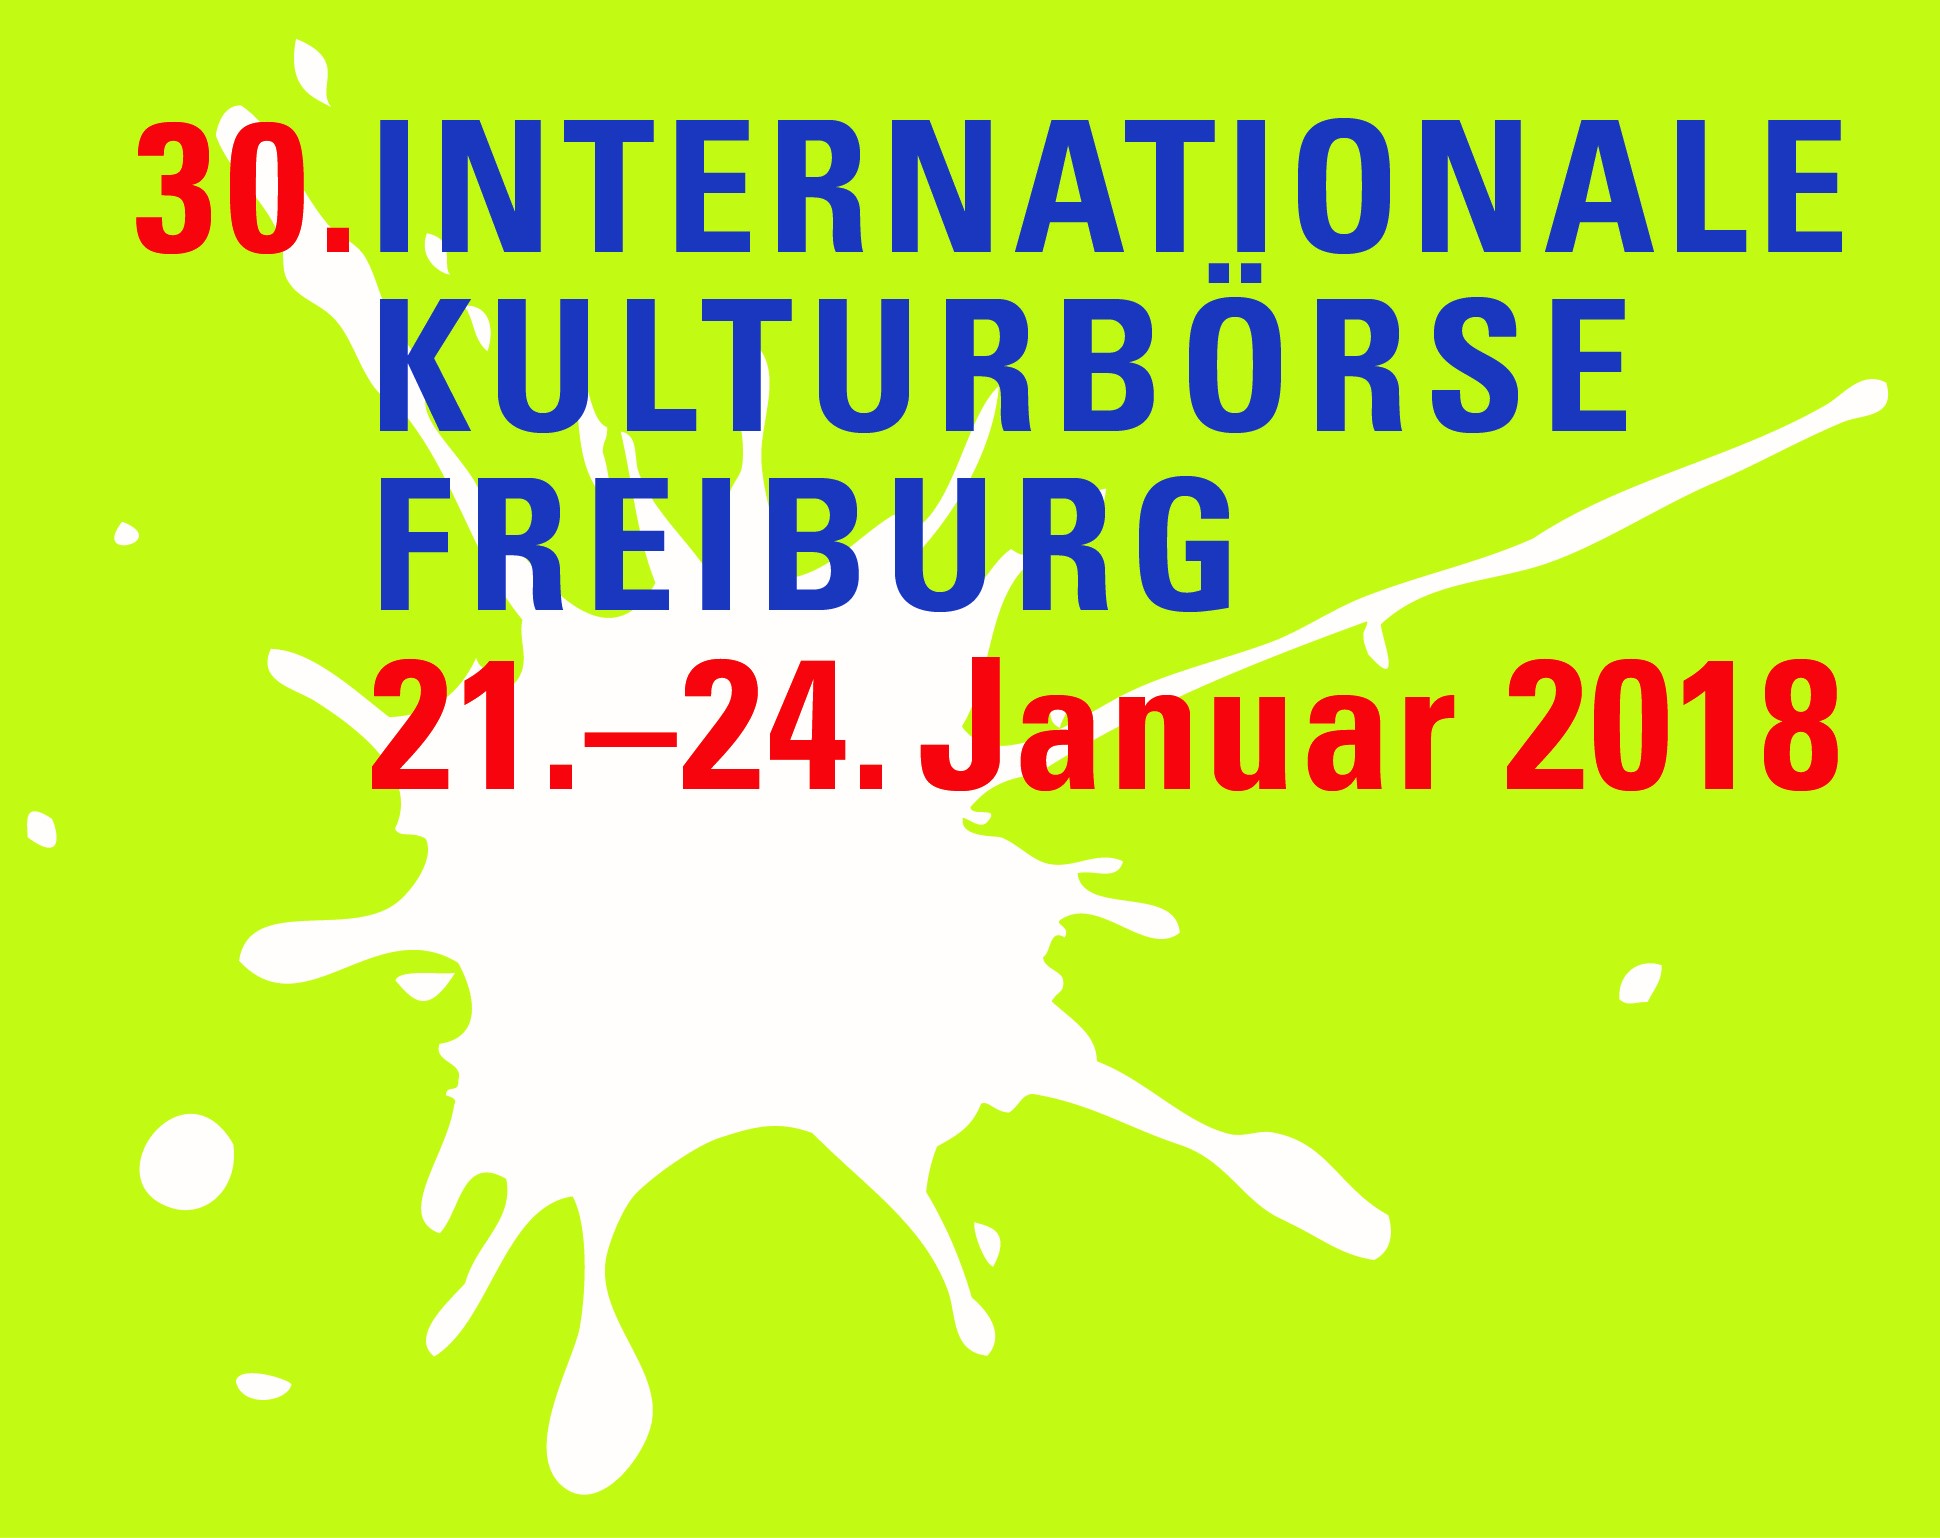 30. Internationale Kulturbörse - 21. bis 24. Januar 2018